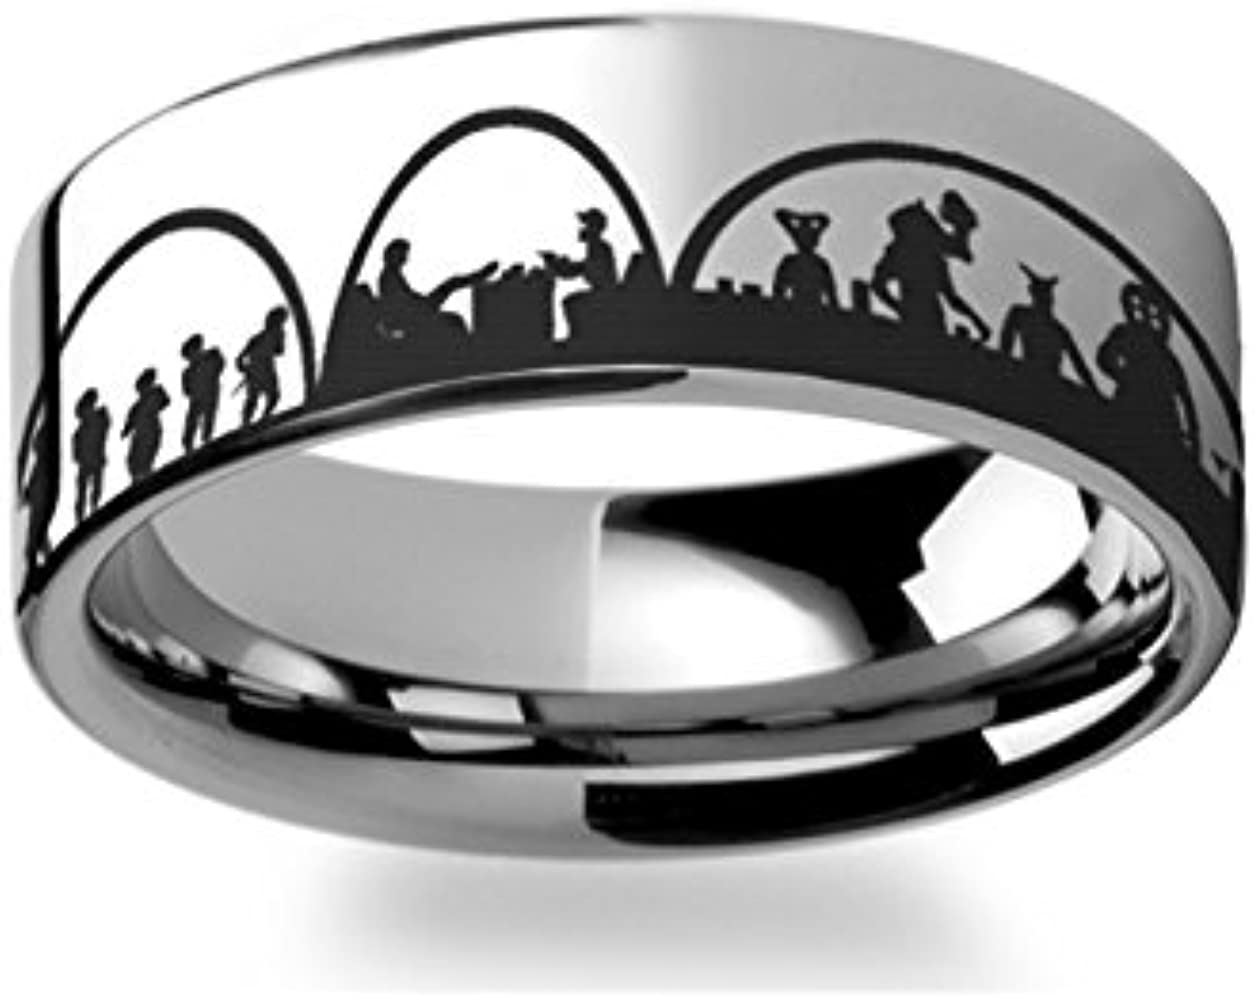 Mos Eisley Cantina A Hope Star Wars Greedo and Han Solo Polished Tungsten Carbide Wedding Band Engraved Jeweley Ring 4mm 6mm 8mm 10mm 12mm